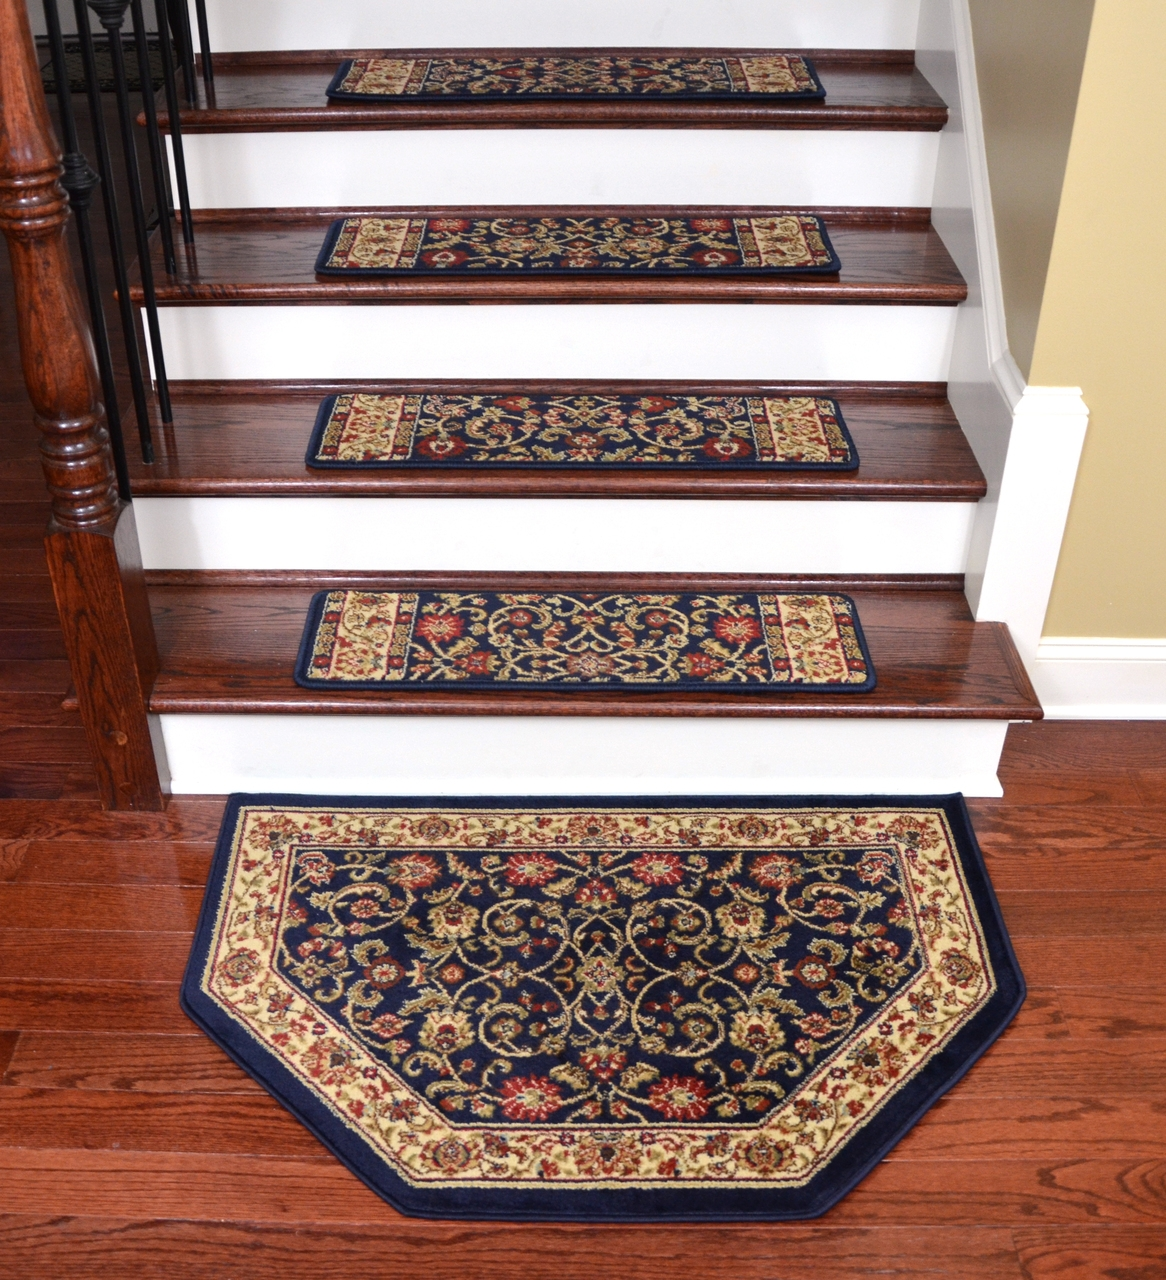 Accessories Oriental Carpet Stair Treads With Wooden Flooring And With Regard To Oriental Carpet Stair Treads (Image 3 of 15)